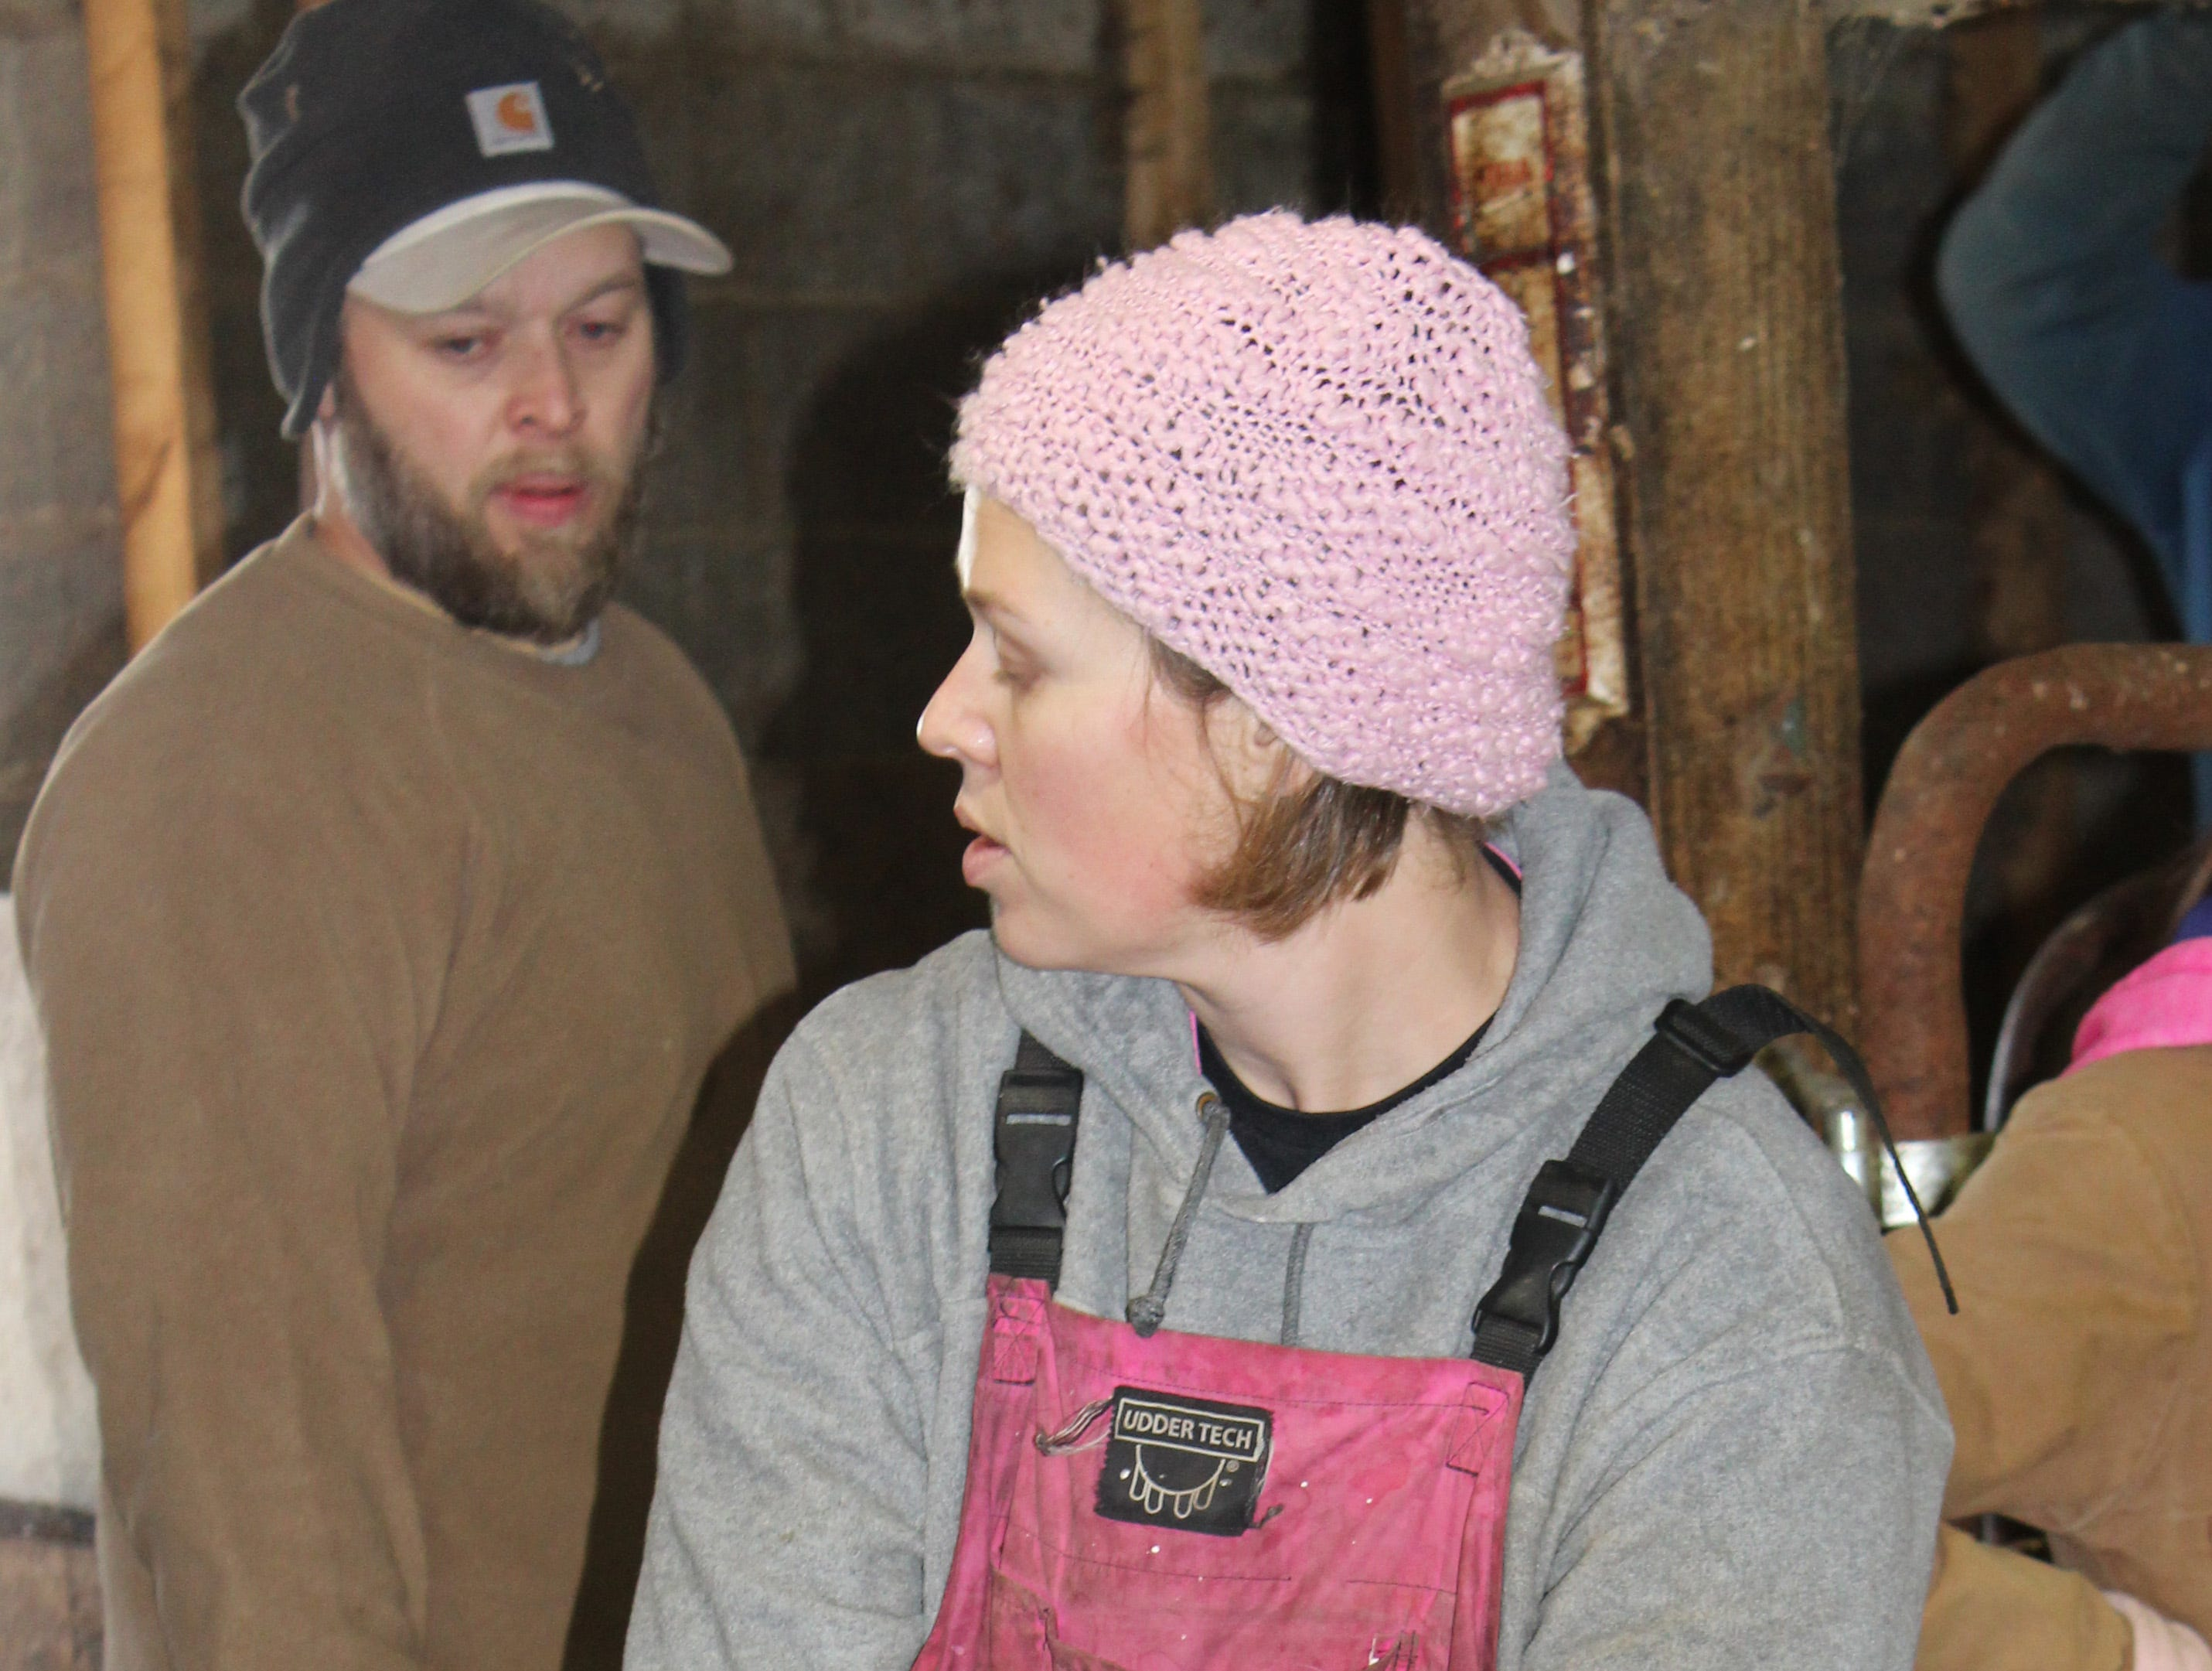 Jennifer Boelk holds on to a Southdown ewe awaiting her turn to be sheared.